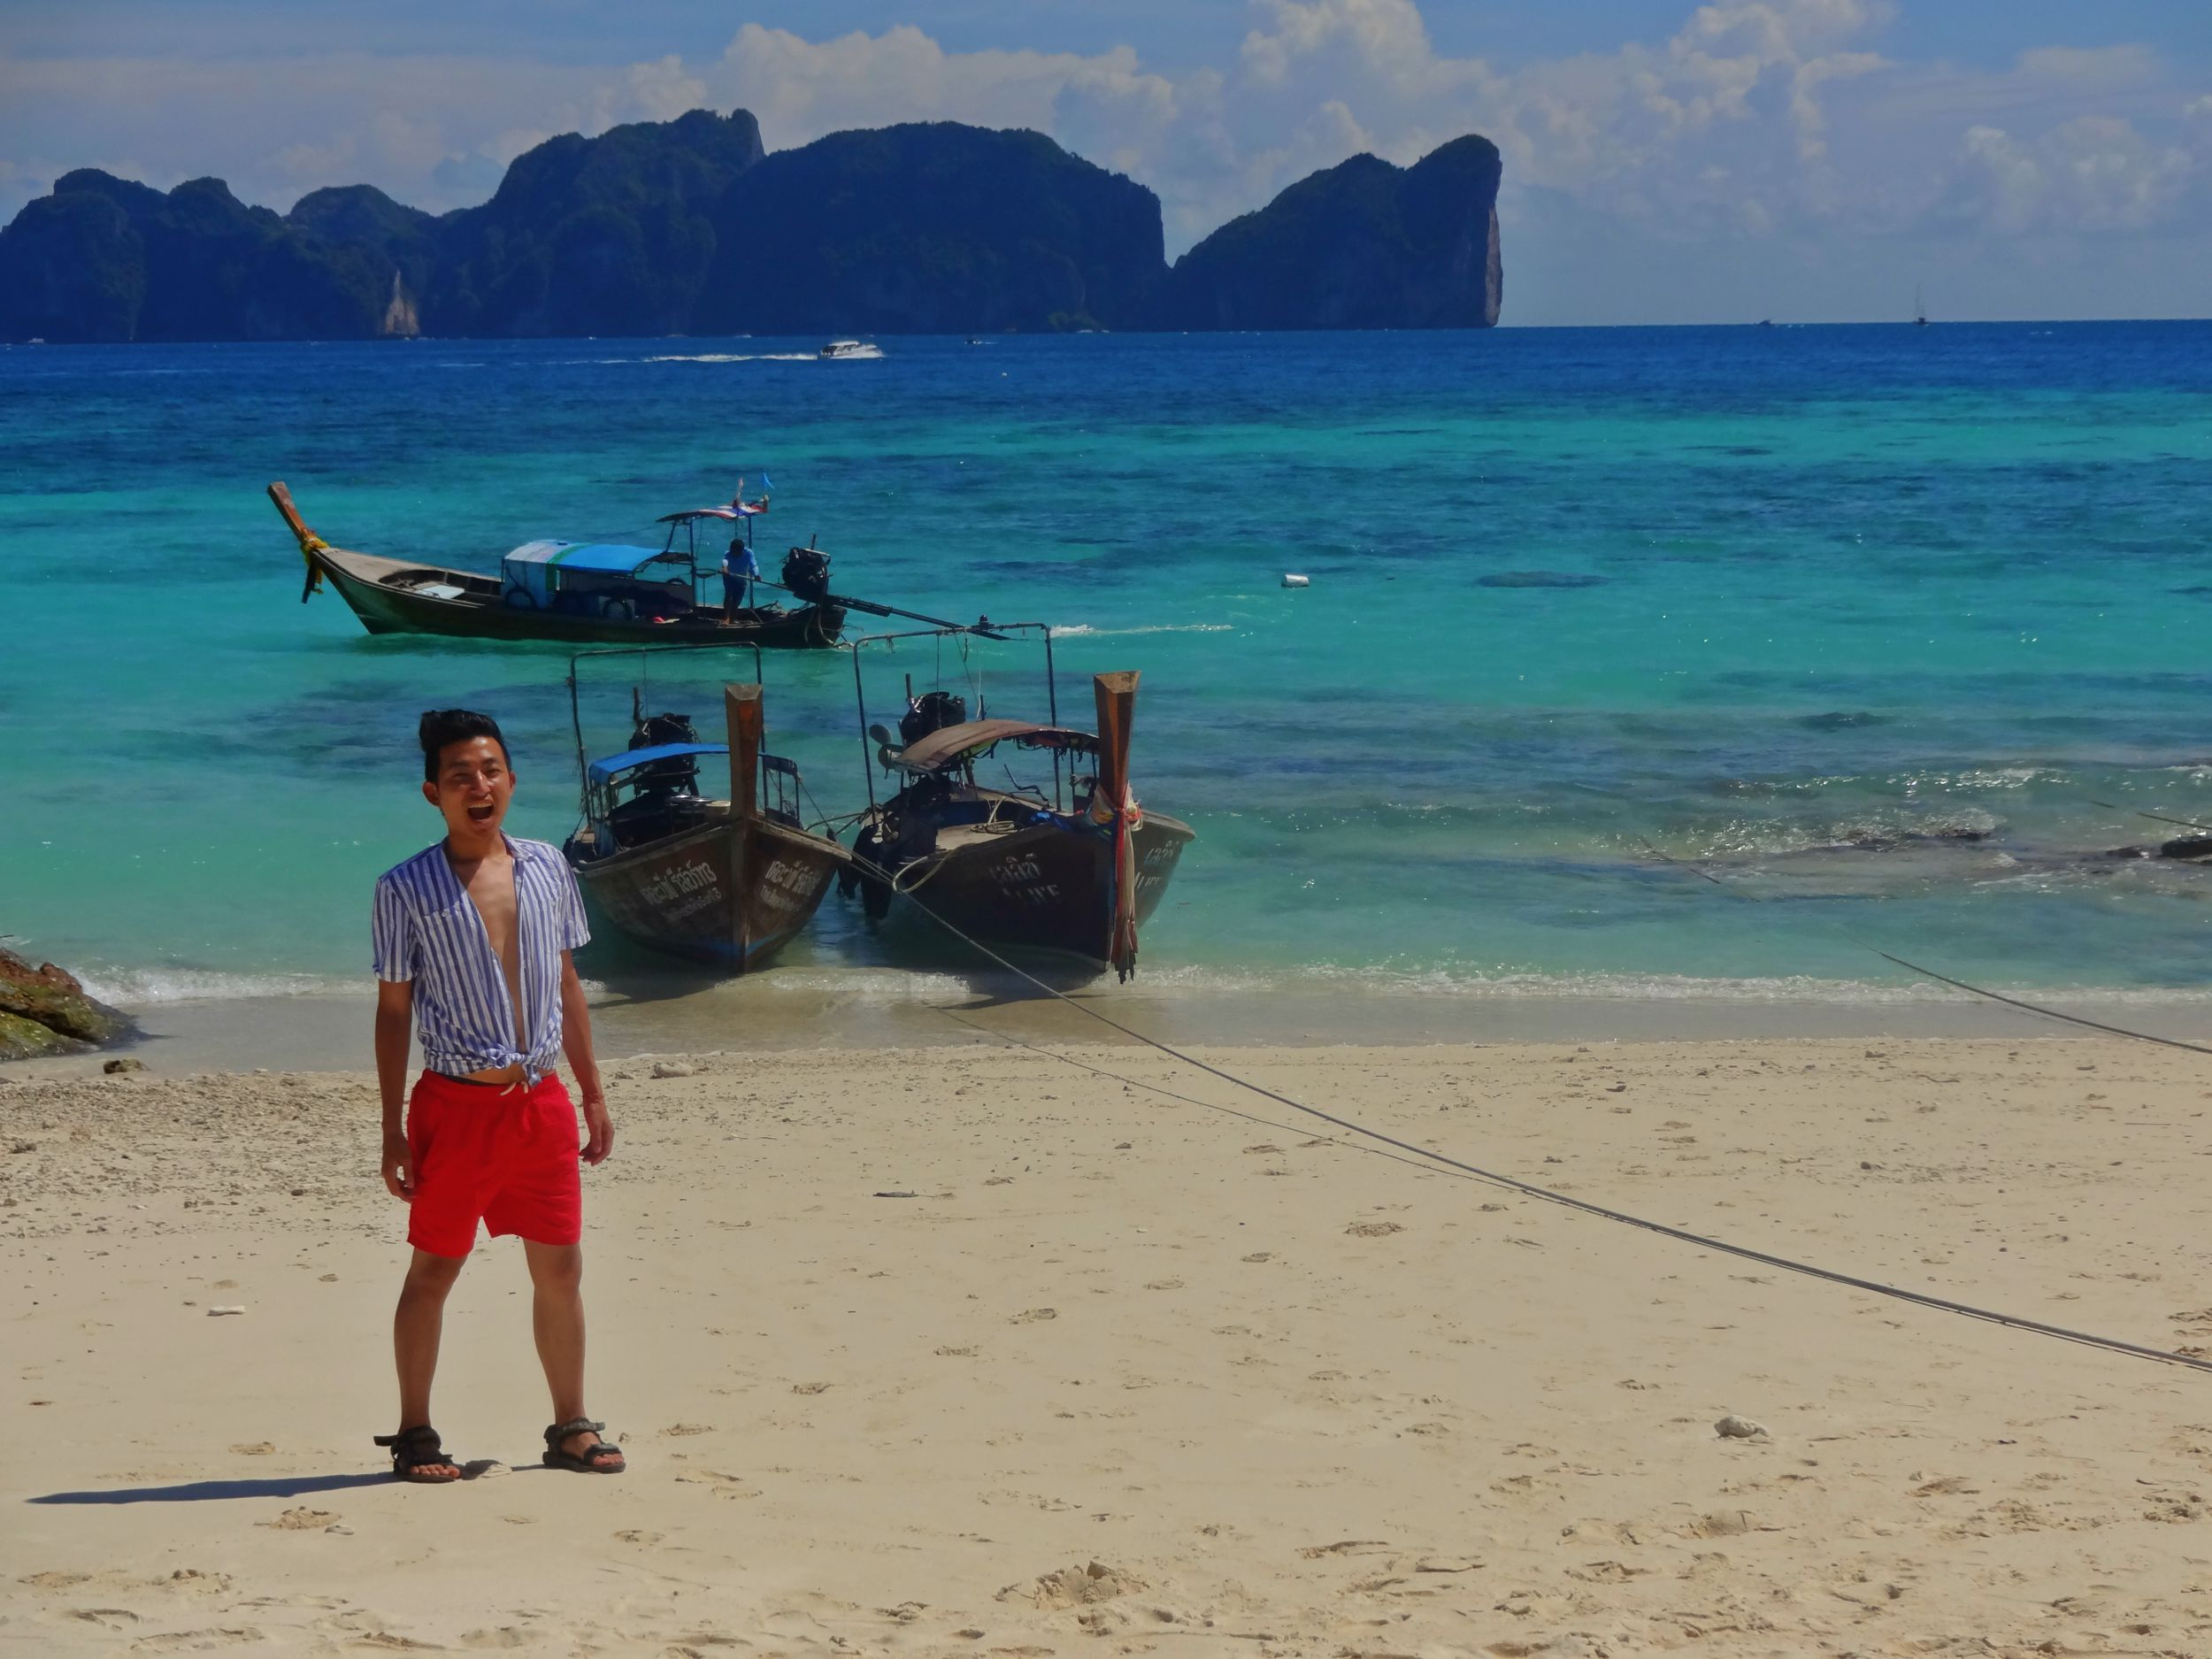 Aug 19: Arriving in Phi Phi Island was breathtaking. It was also the place where we spent a little extra and stayed at a very nice resort. At our beach in front of the resort and I kid you not, it was even more beautiful there... Our biggest regret? Not staying an extra night.